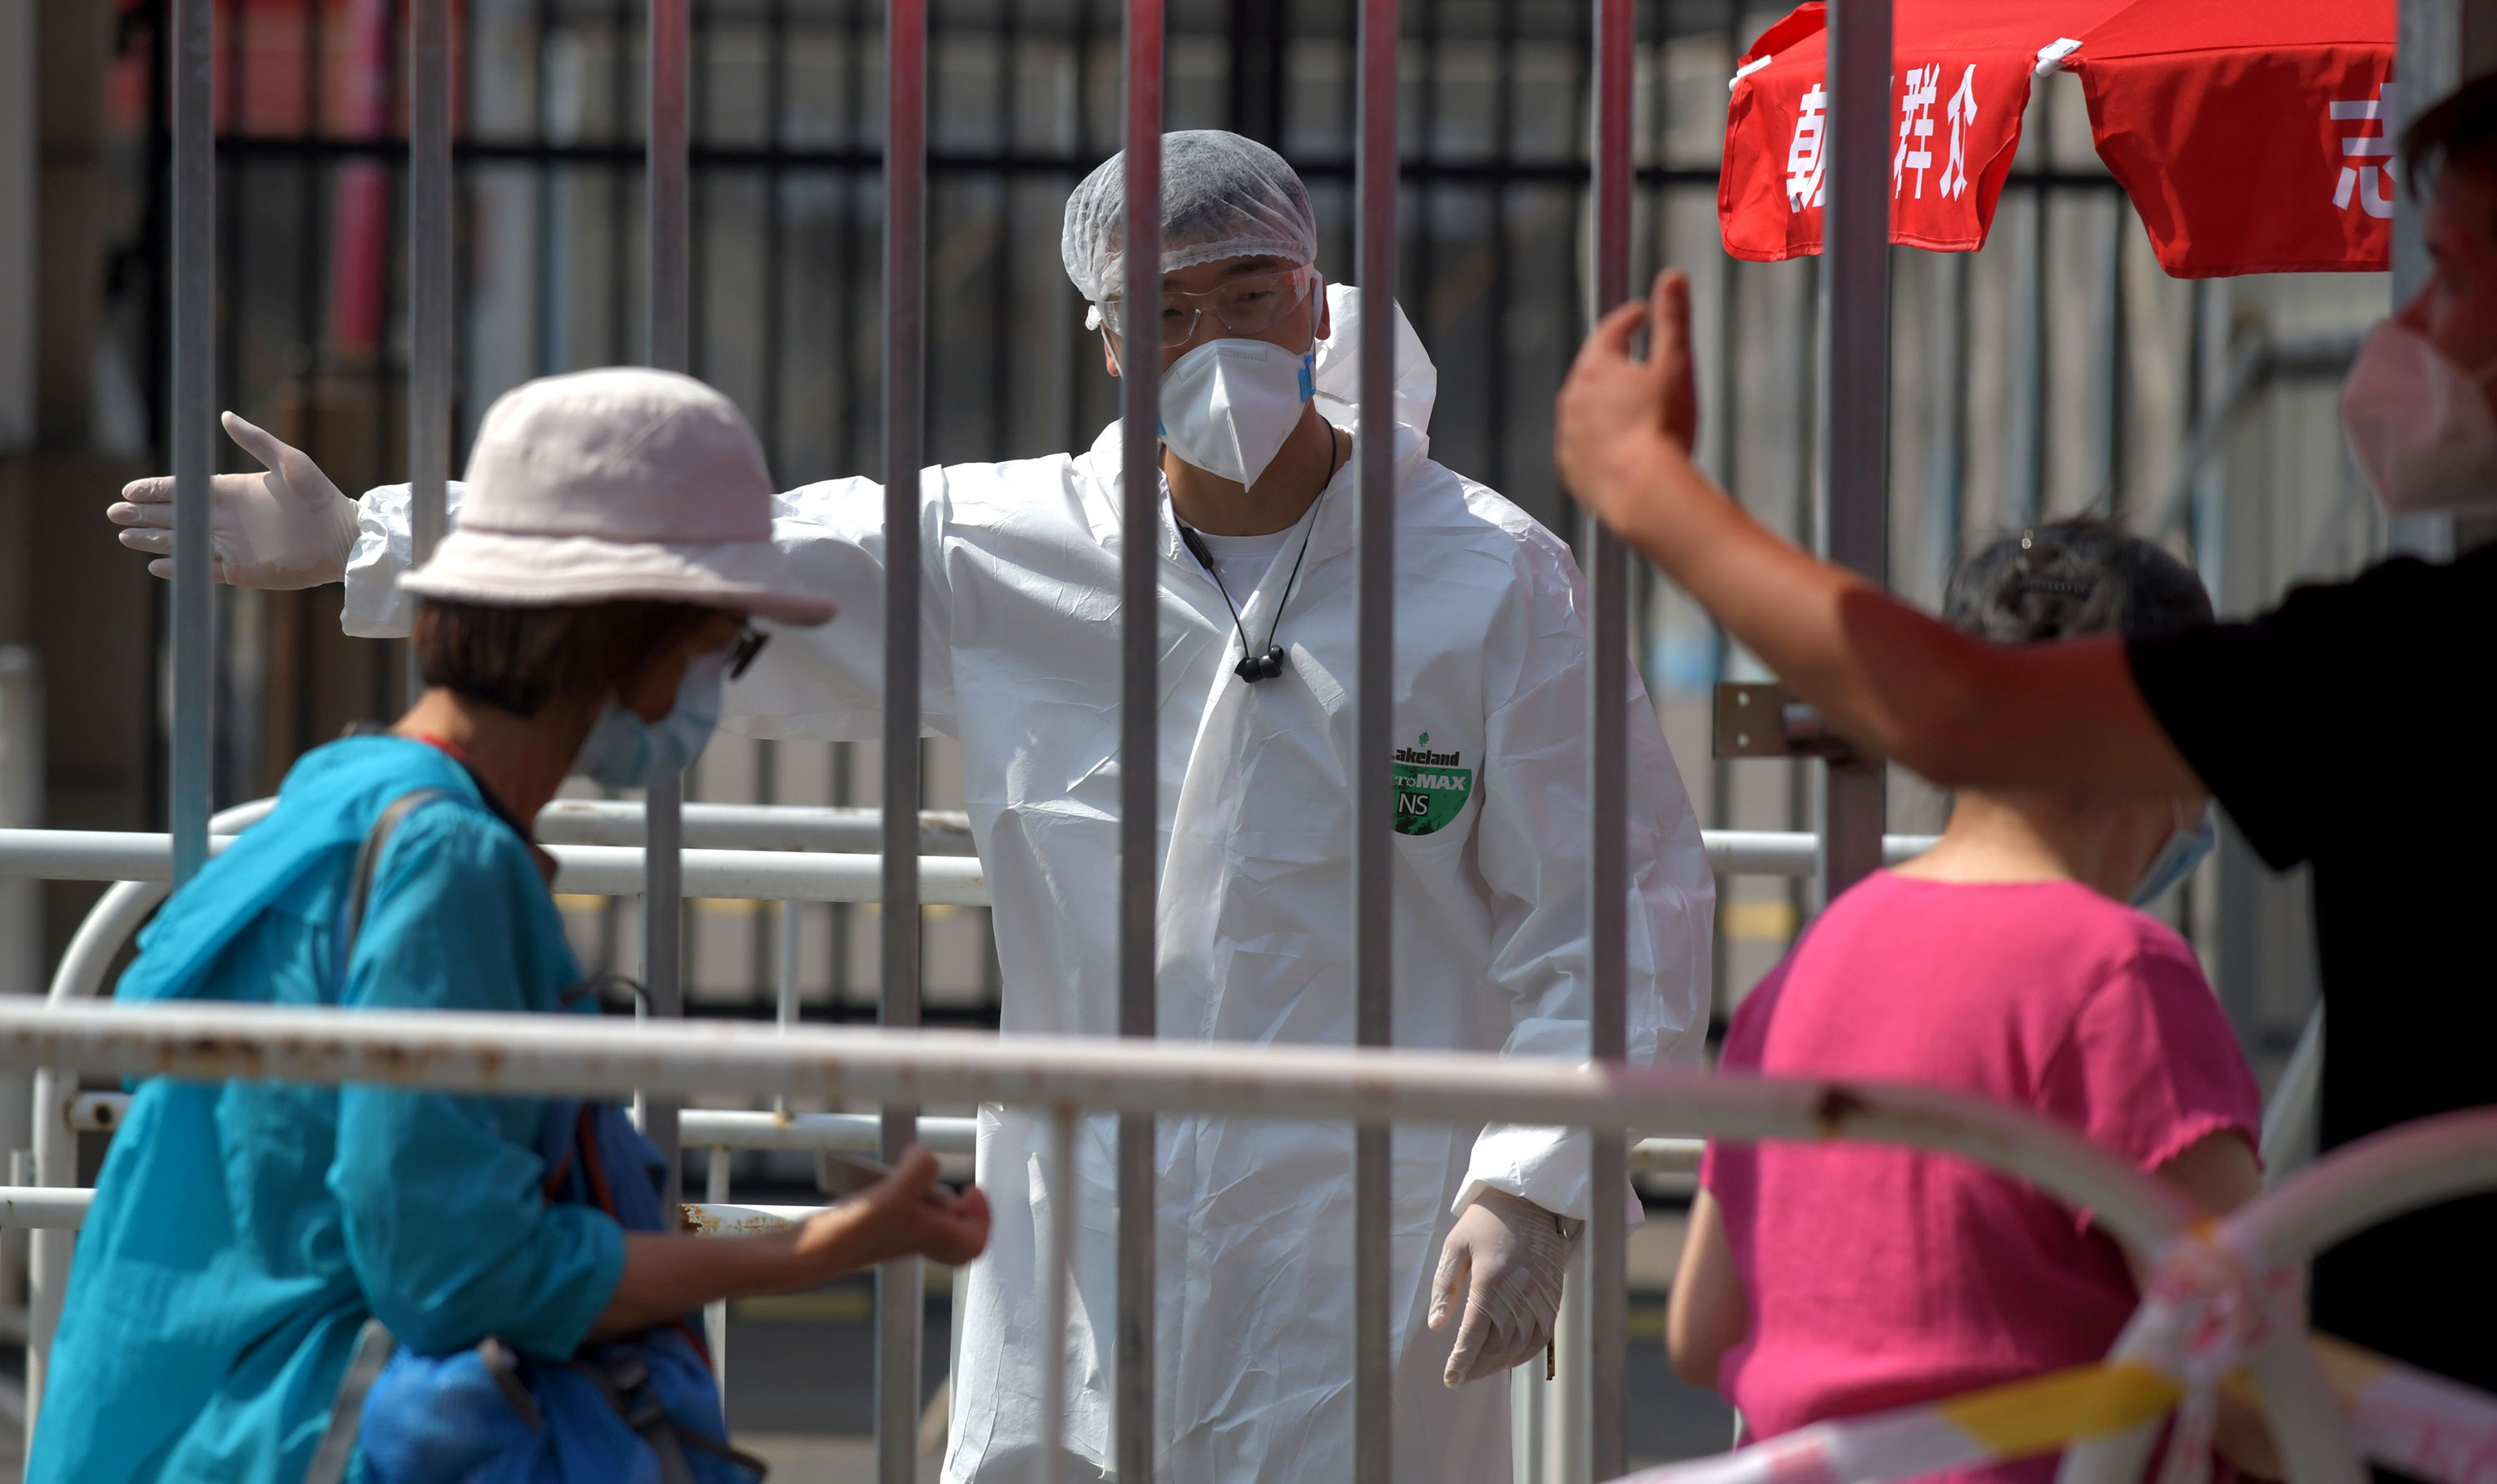 Workers direct people at a coronavirus testing station on June 30 in Beijing, China.